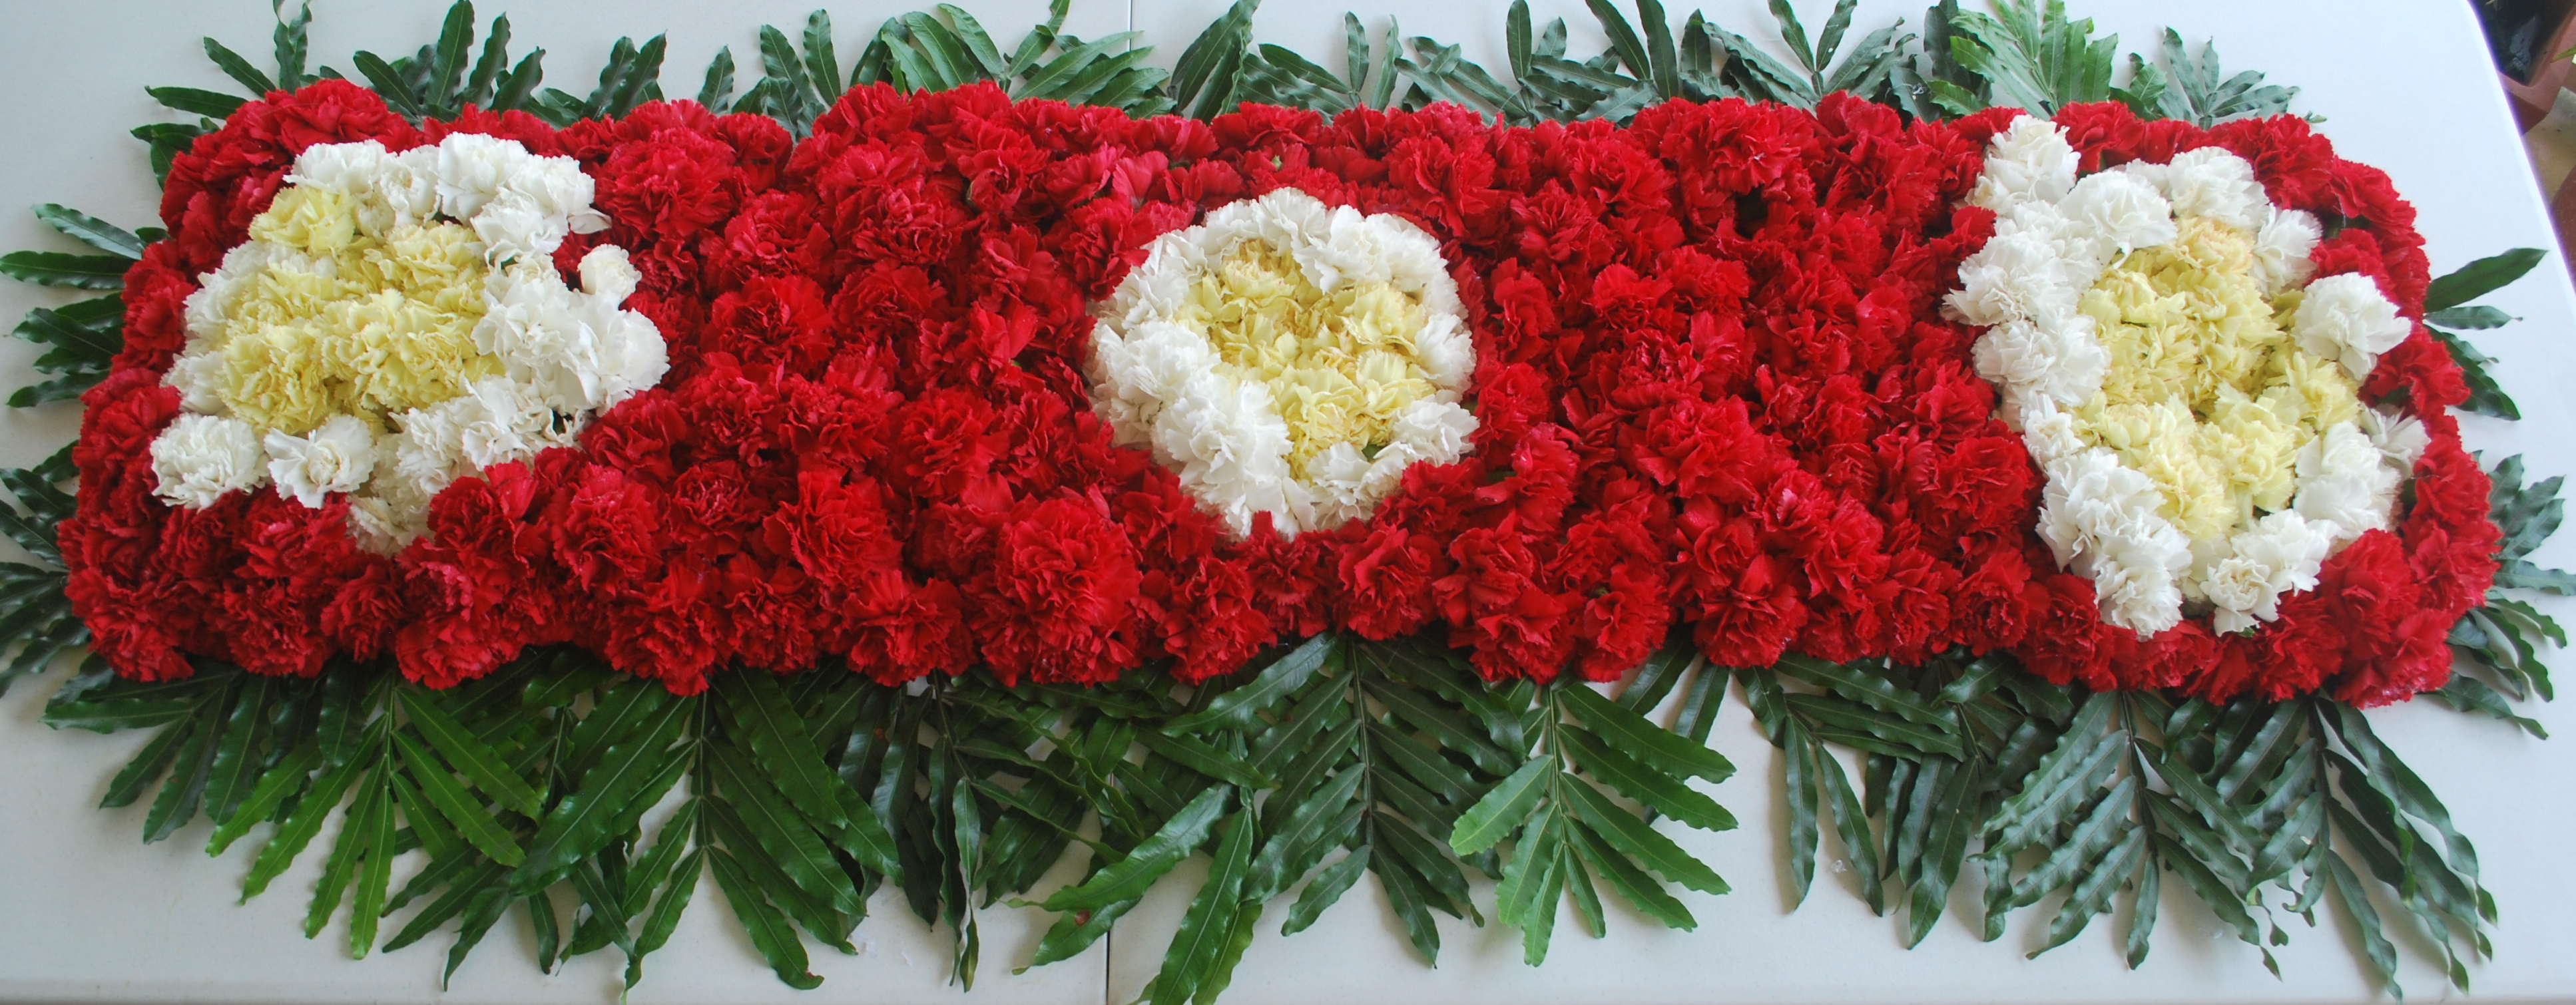 https://horseracingbelize.com/Castleton Derby Blanket Of Carnations